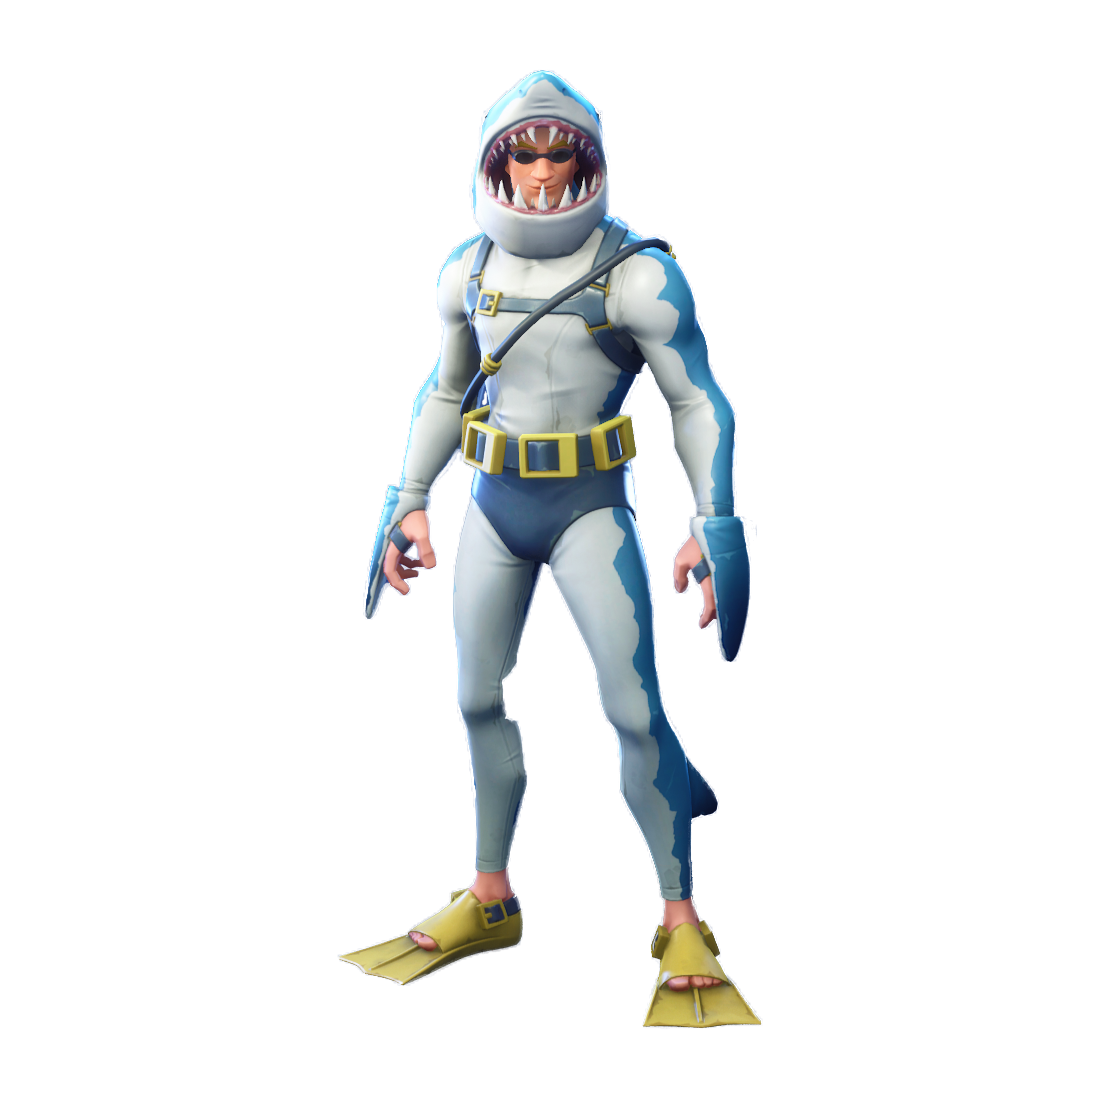 fnbr.co — Fortnite Cosmetics.